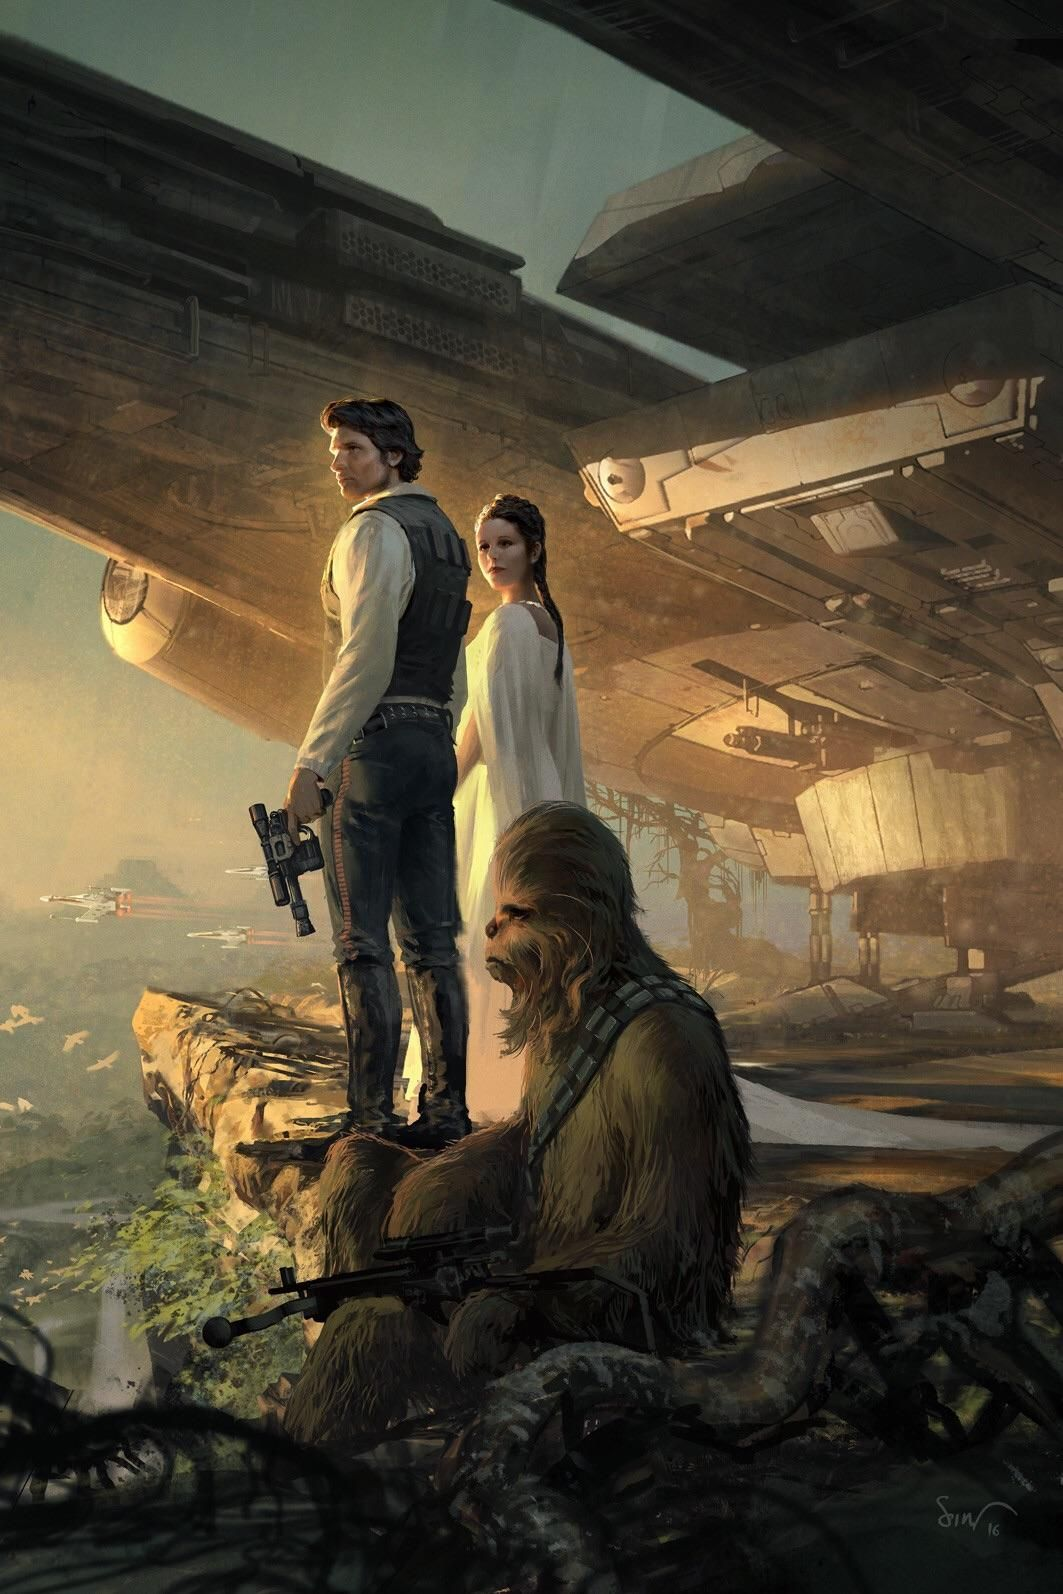 Han Chewie and Leia gazing into the distancehttps//i.redd